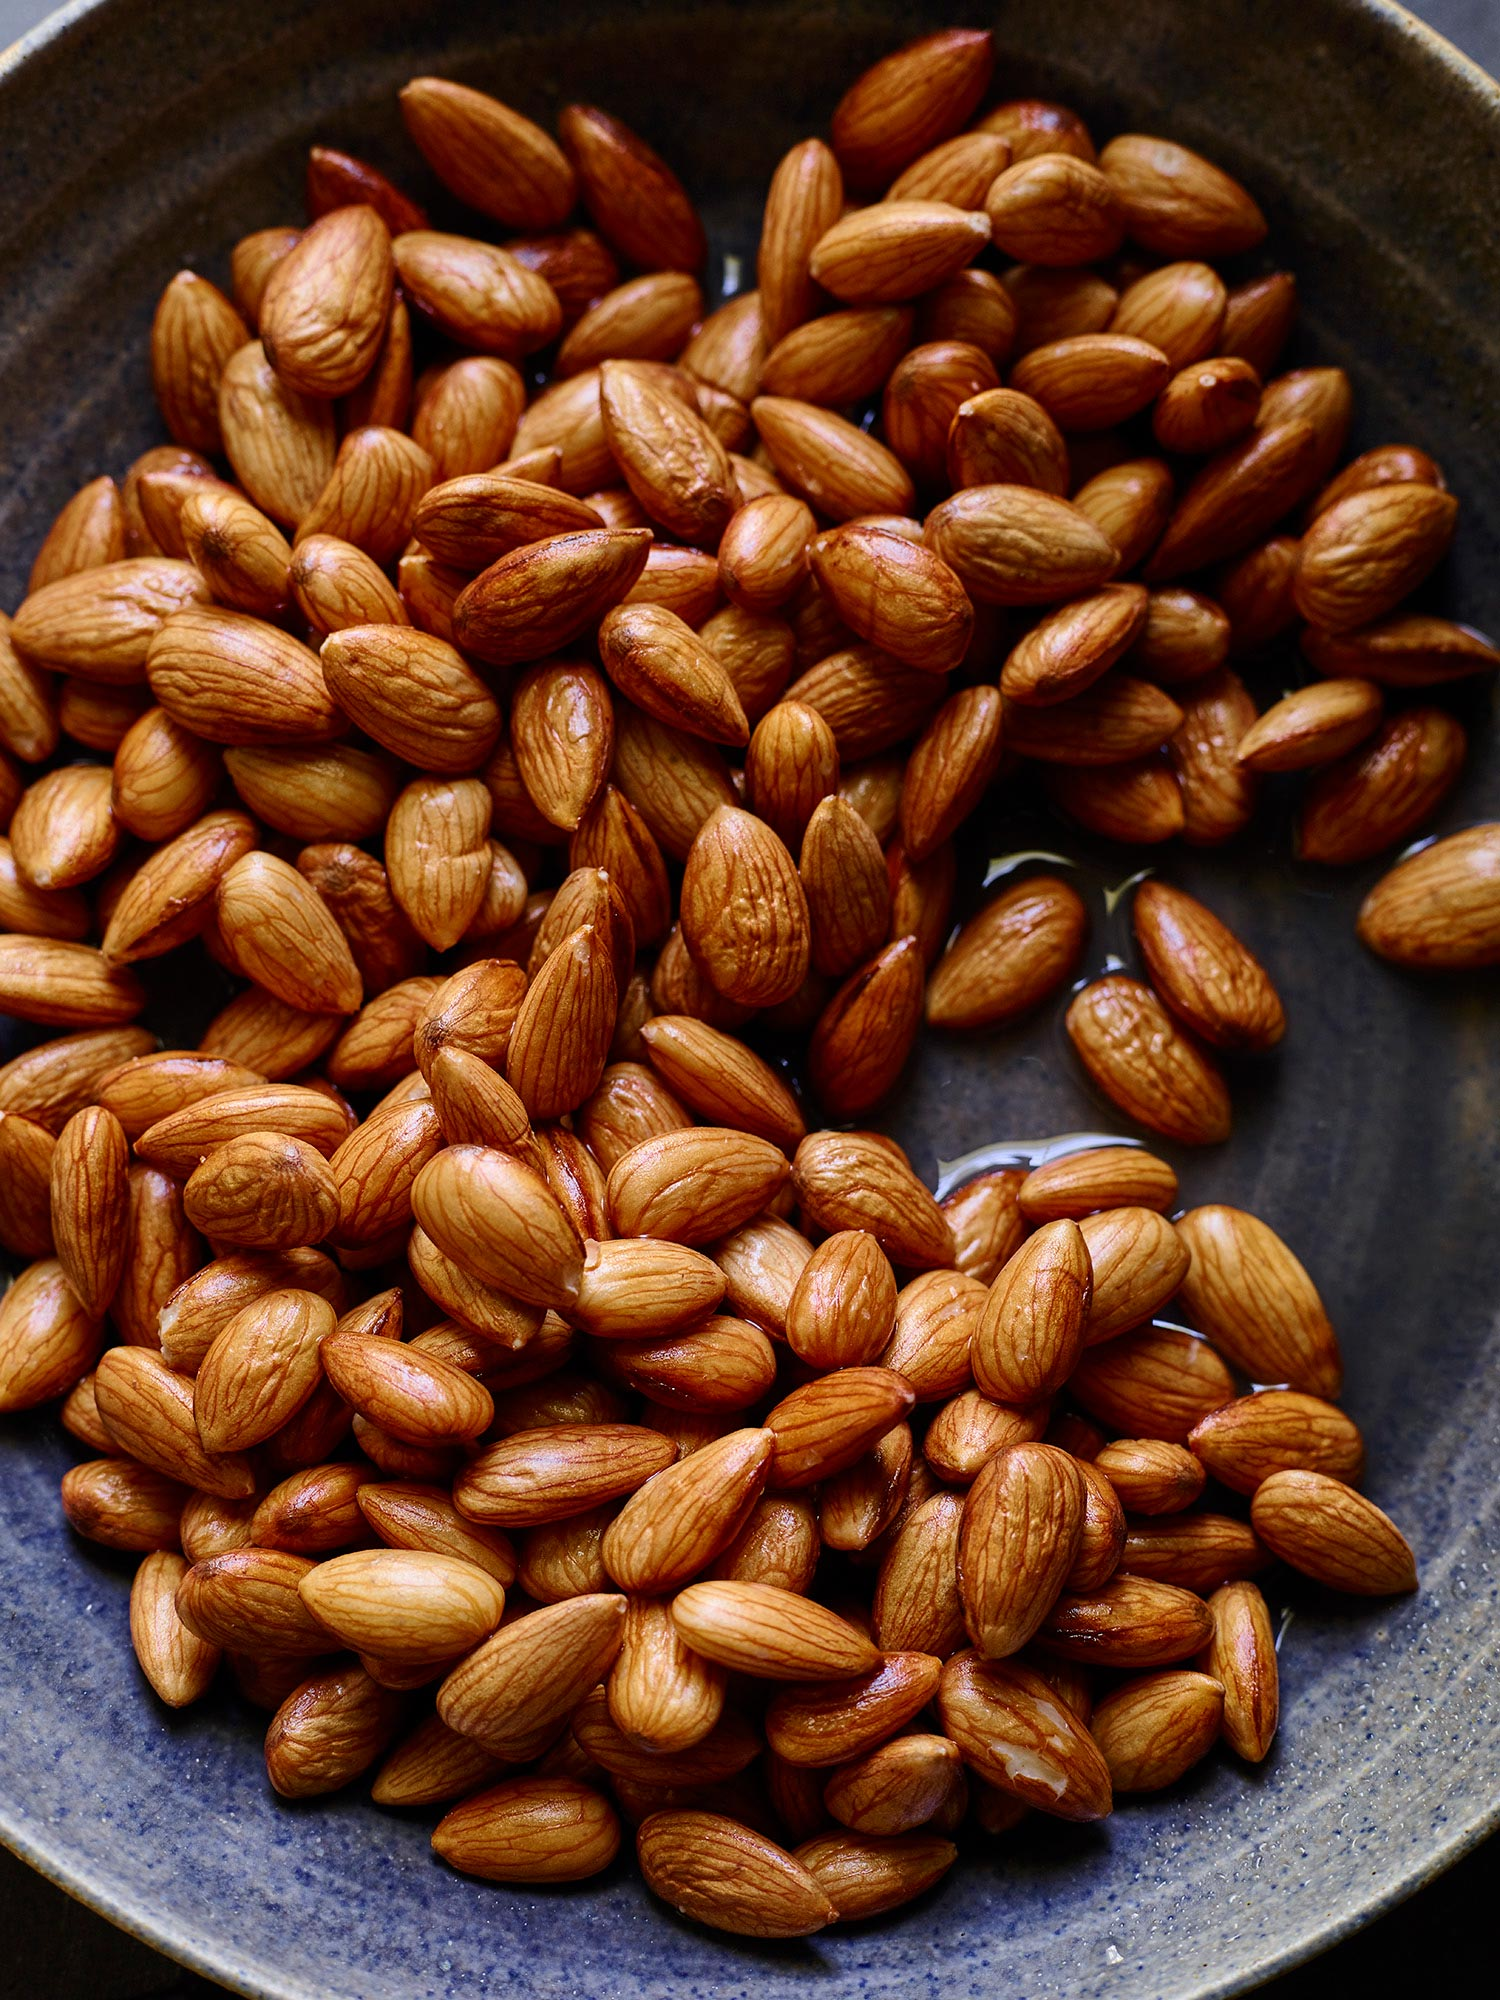 Almonds_Soaking_V1_170618_278372